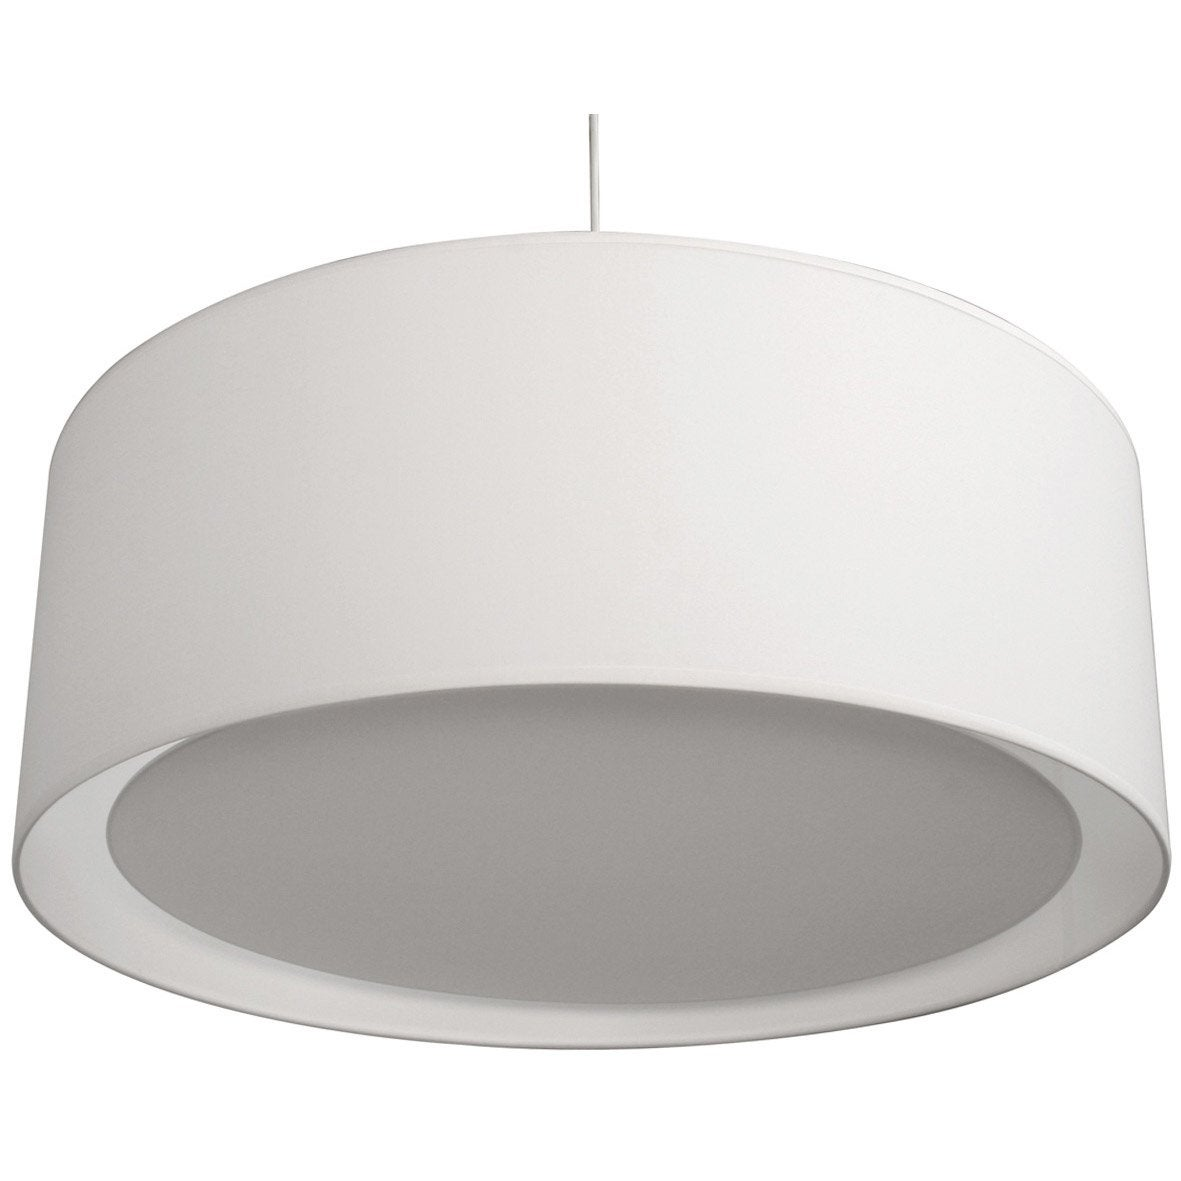 Suspension design essentiel coton blanc blanc n 0 1 x 60 w inspire leroy me - Suspension new york leroy merlin ...